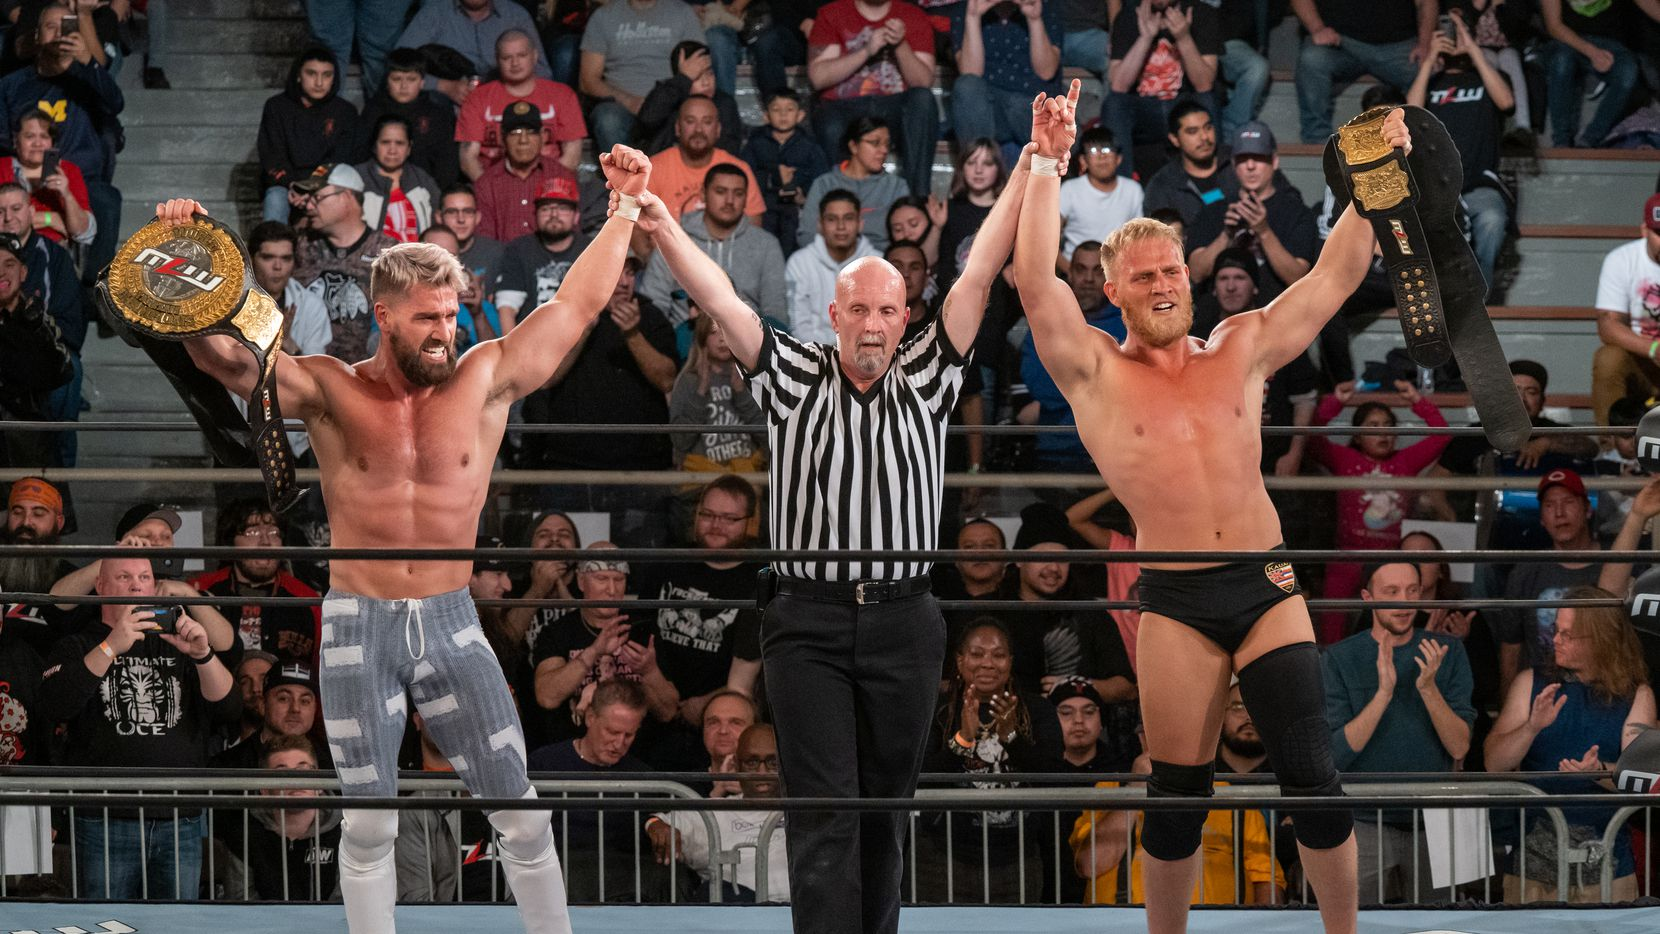 Ross and Marshall Von Erich get their hands raised after winning the MLW World Tag Team Championship in Chicago, November 2, 2019.